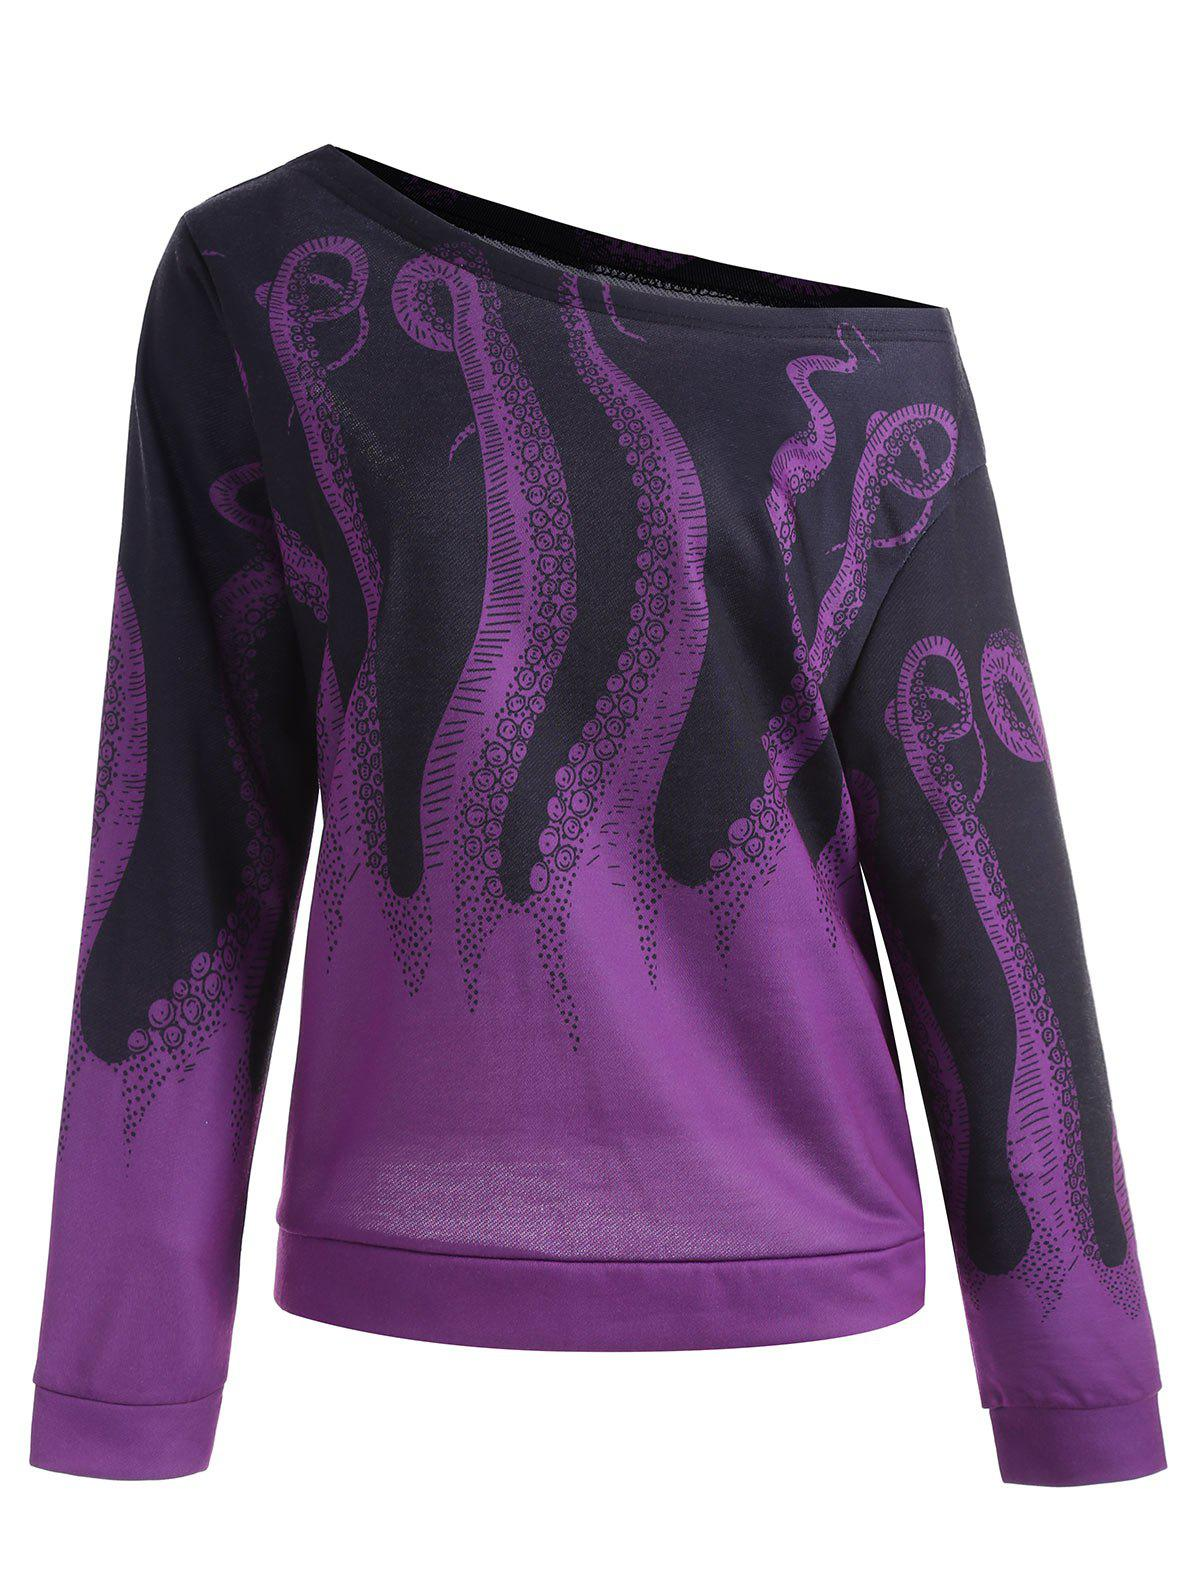 Octopus Printed Plus Size SweatshirtWOMEN<br><br>Size: 5XL; Color: PURPLE; Material: Cotton,Polyester; Shirt Length: Regular; Sleeve Length: Full; Style: Fashion; Pattern Style: Animal; Season: Fall; Weight: 0.4100kg; Package Contents: 1 x Sweatshirt;